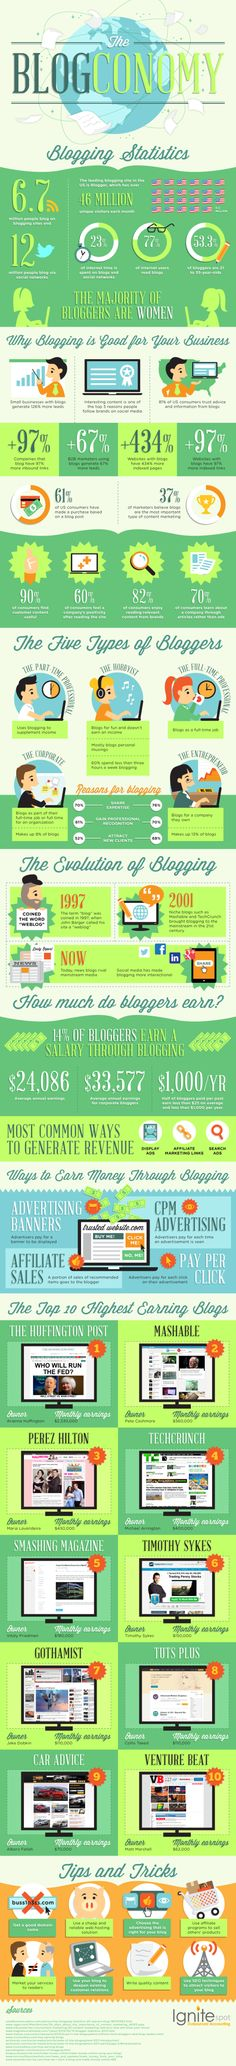 The blogconomy infographic 640x5604 The Blogconomy [infographic]